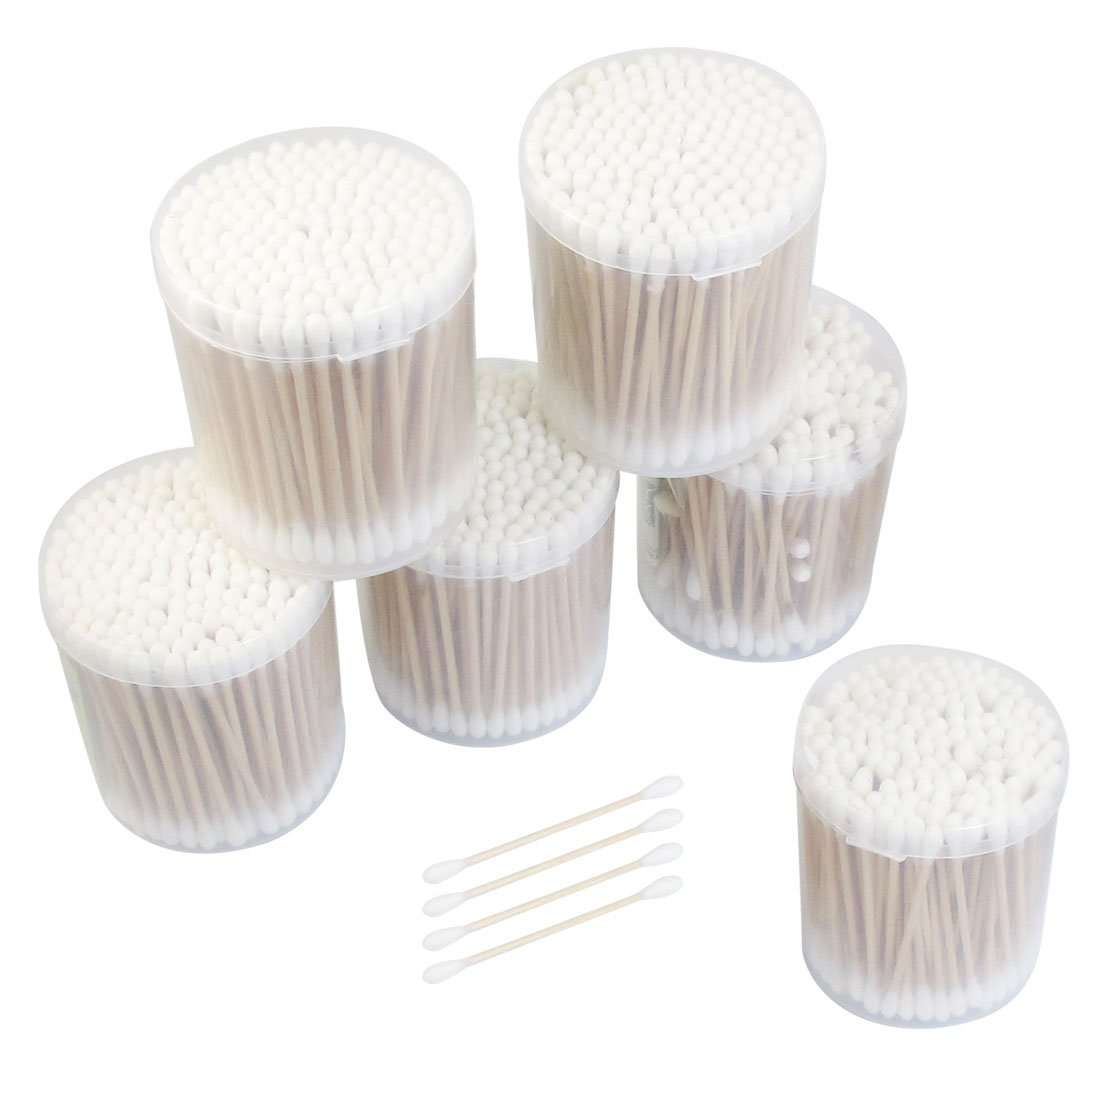 30 Packs Disposable Double Head Wooden Stick Cotton Swabs Buds